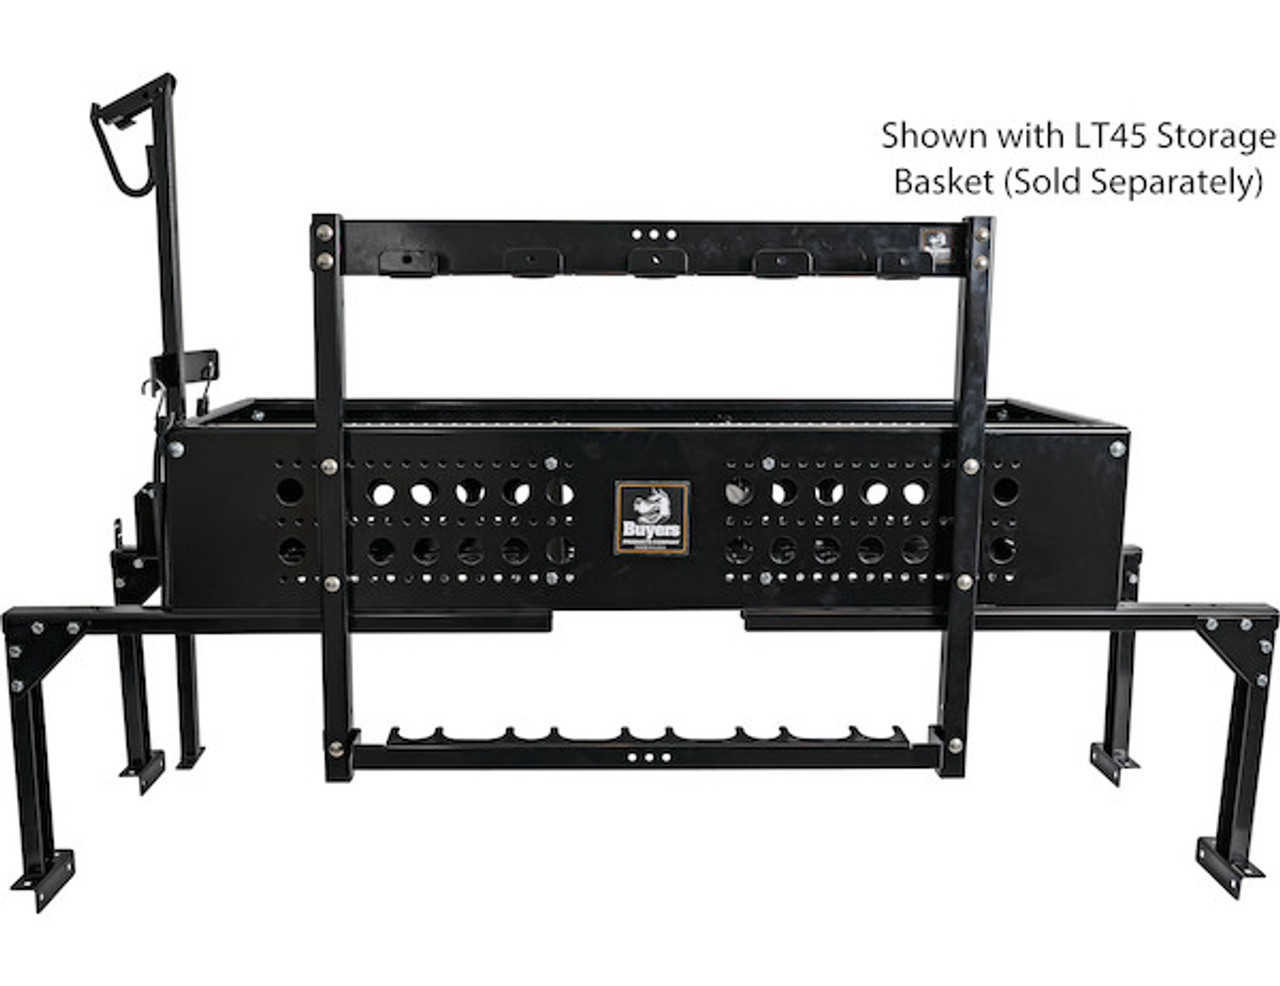 Buyers LT46 5 Position Vertical Hand Tool Rack For Open Landscape Trailers Picture # 8 Sold with LT45 Storage Basket (Sold Separately)